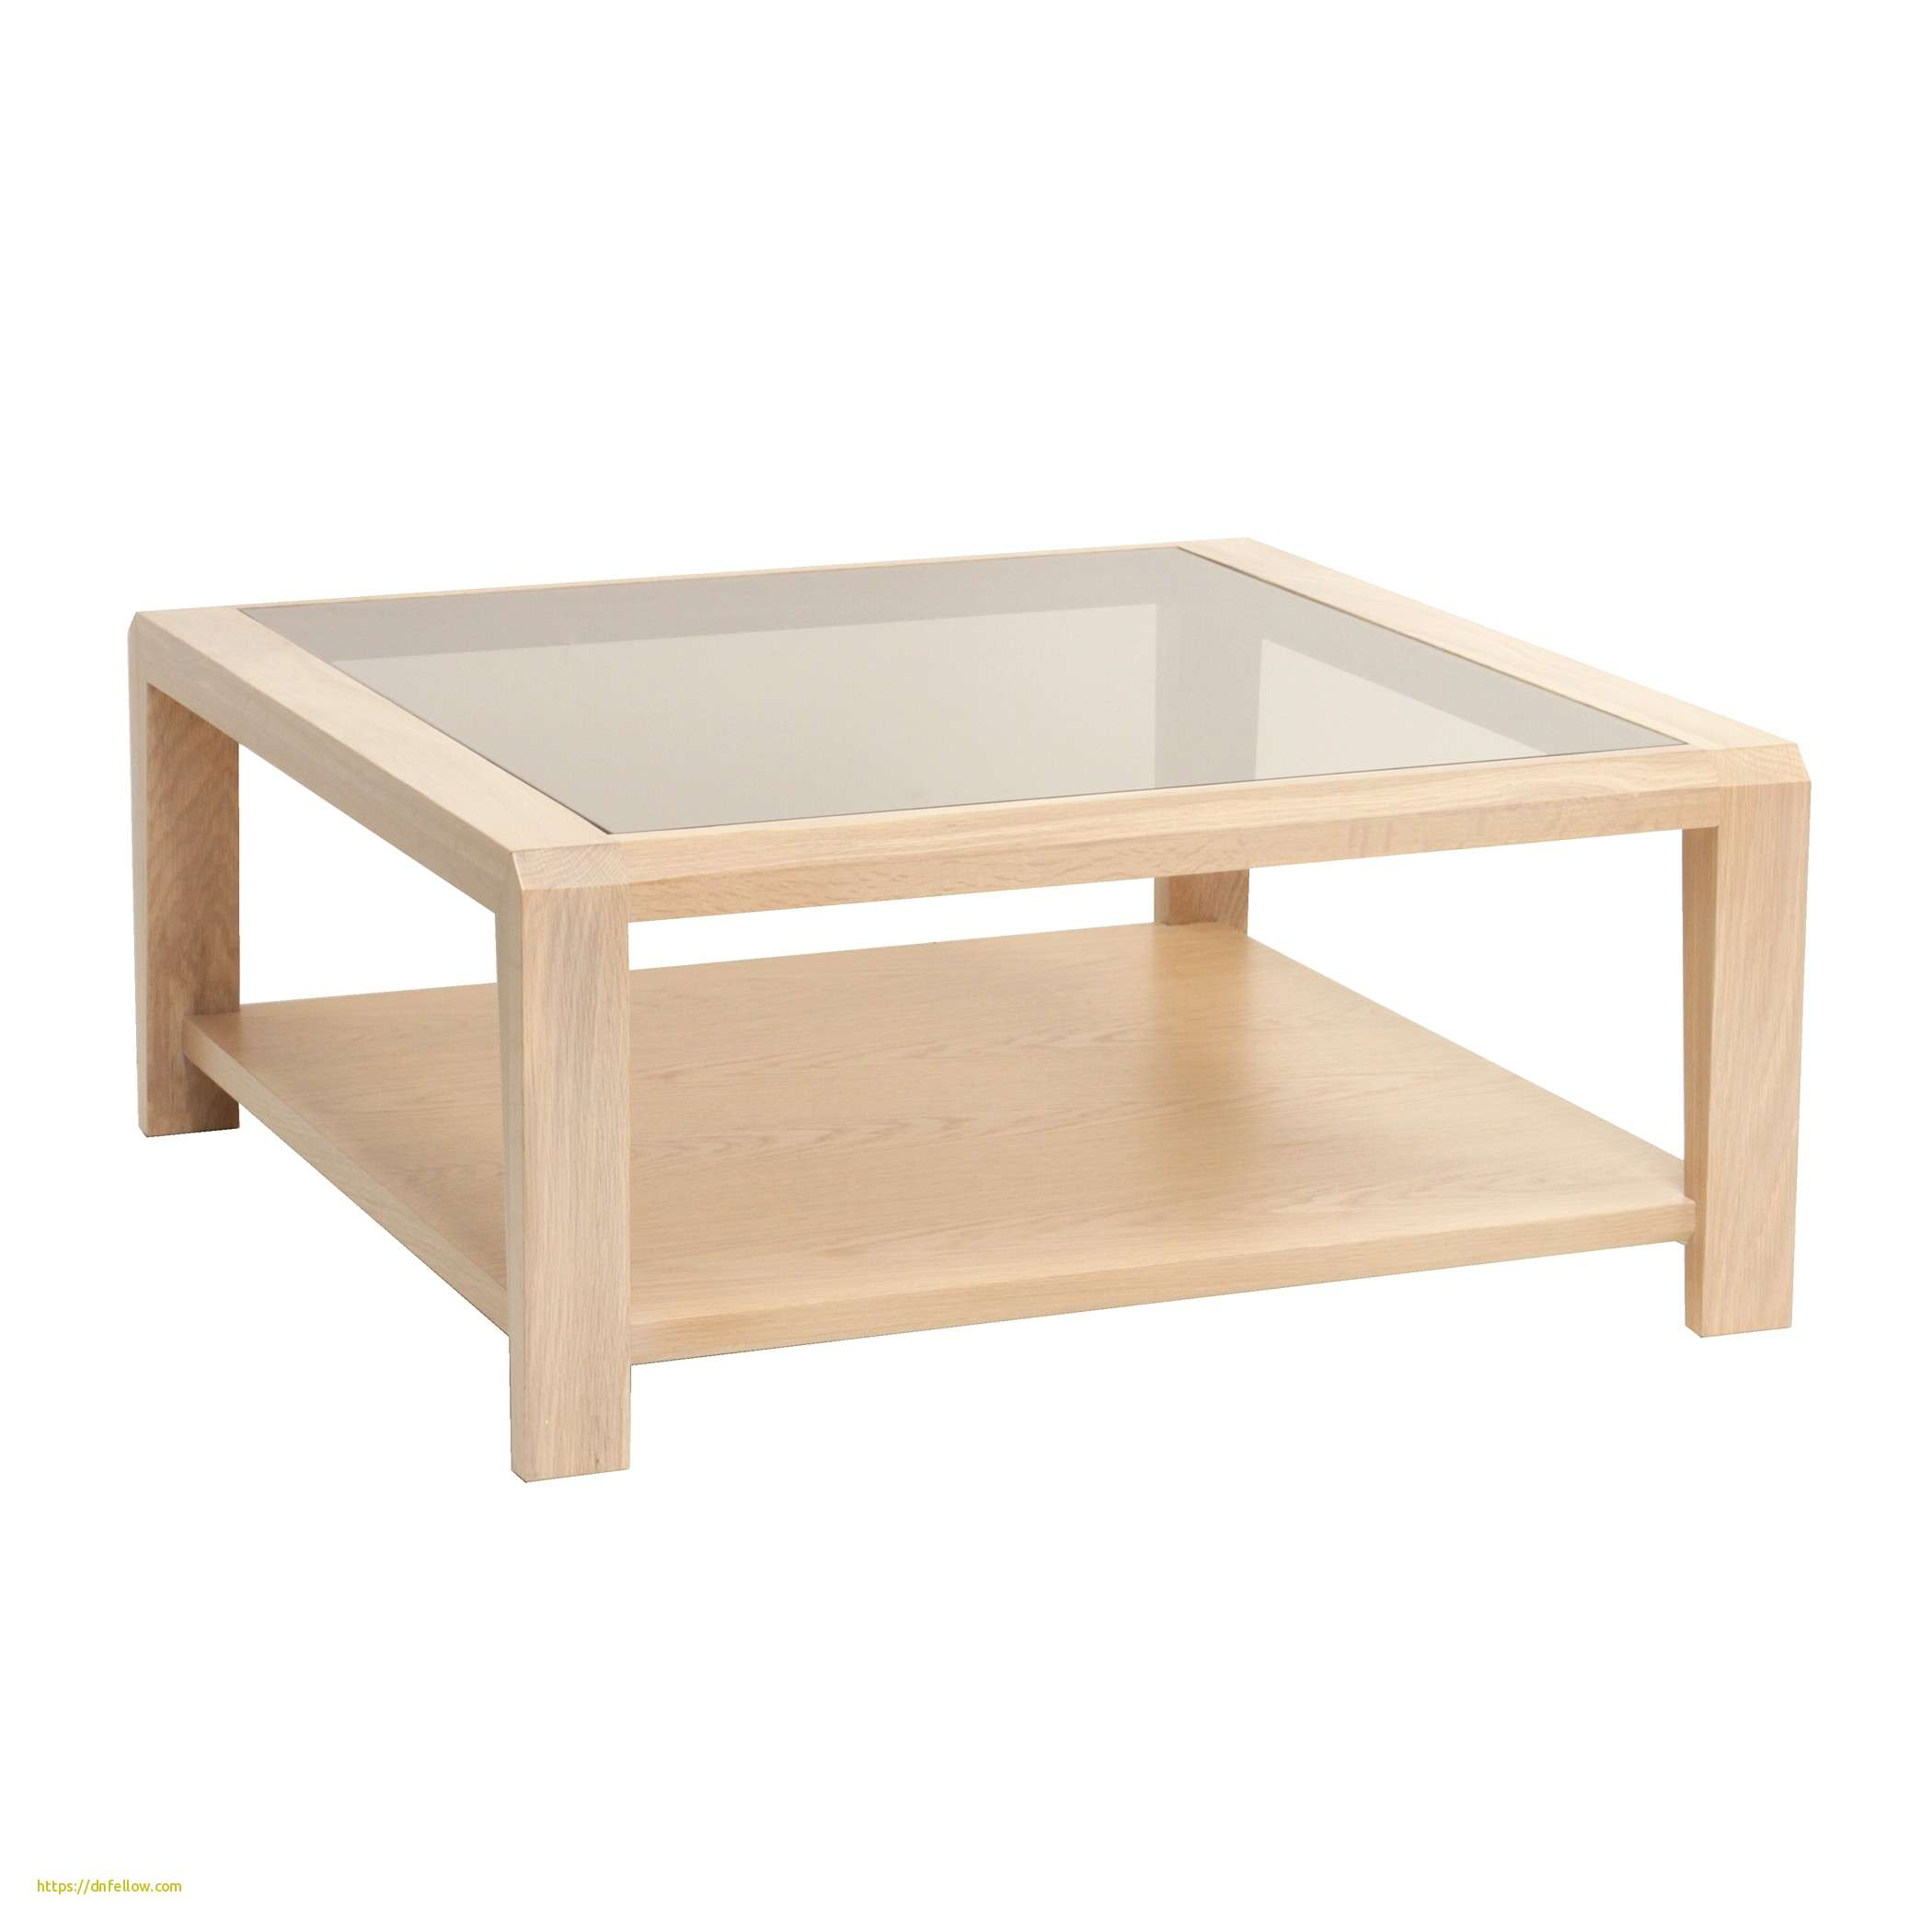 Seemly Large Square Glass Coffee Table Square Coffeetable Interior Large Square Glass Coffee Table S Coffee Tables Ideas Large Square Coffee Table Wood Large Square Coffee Table Australia houzz-03 Large Square Coffee Table